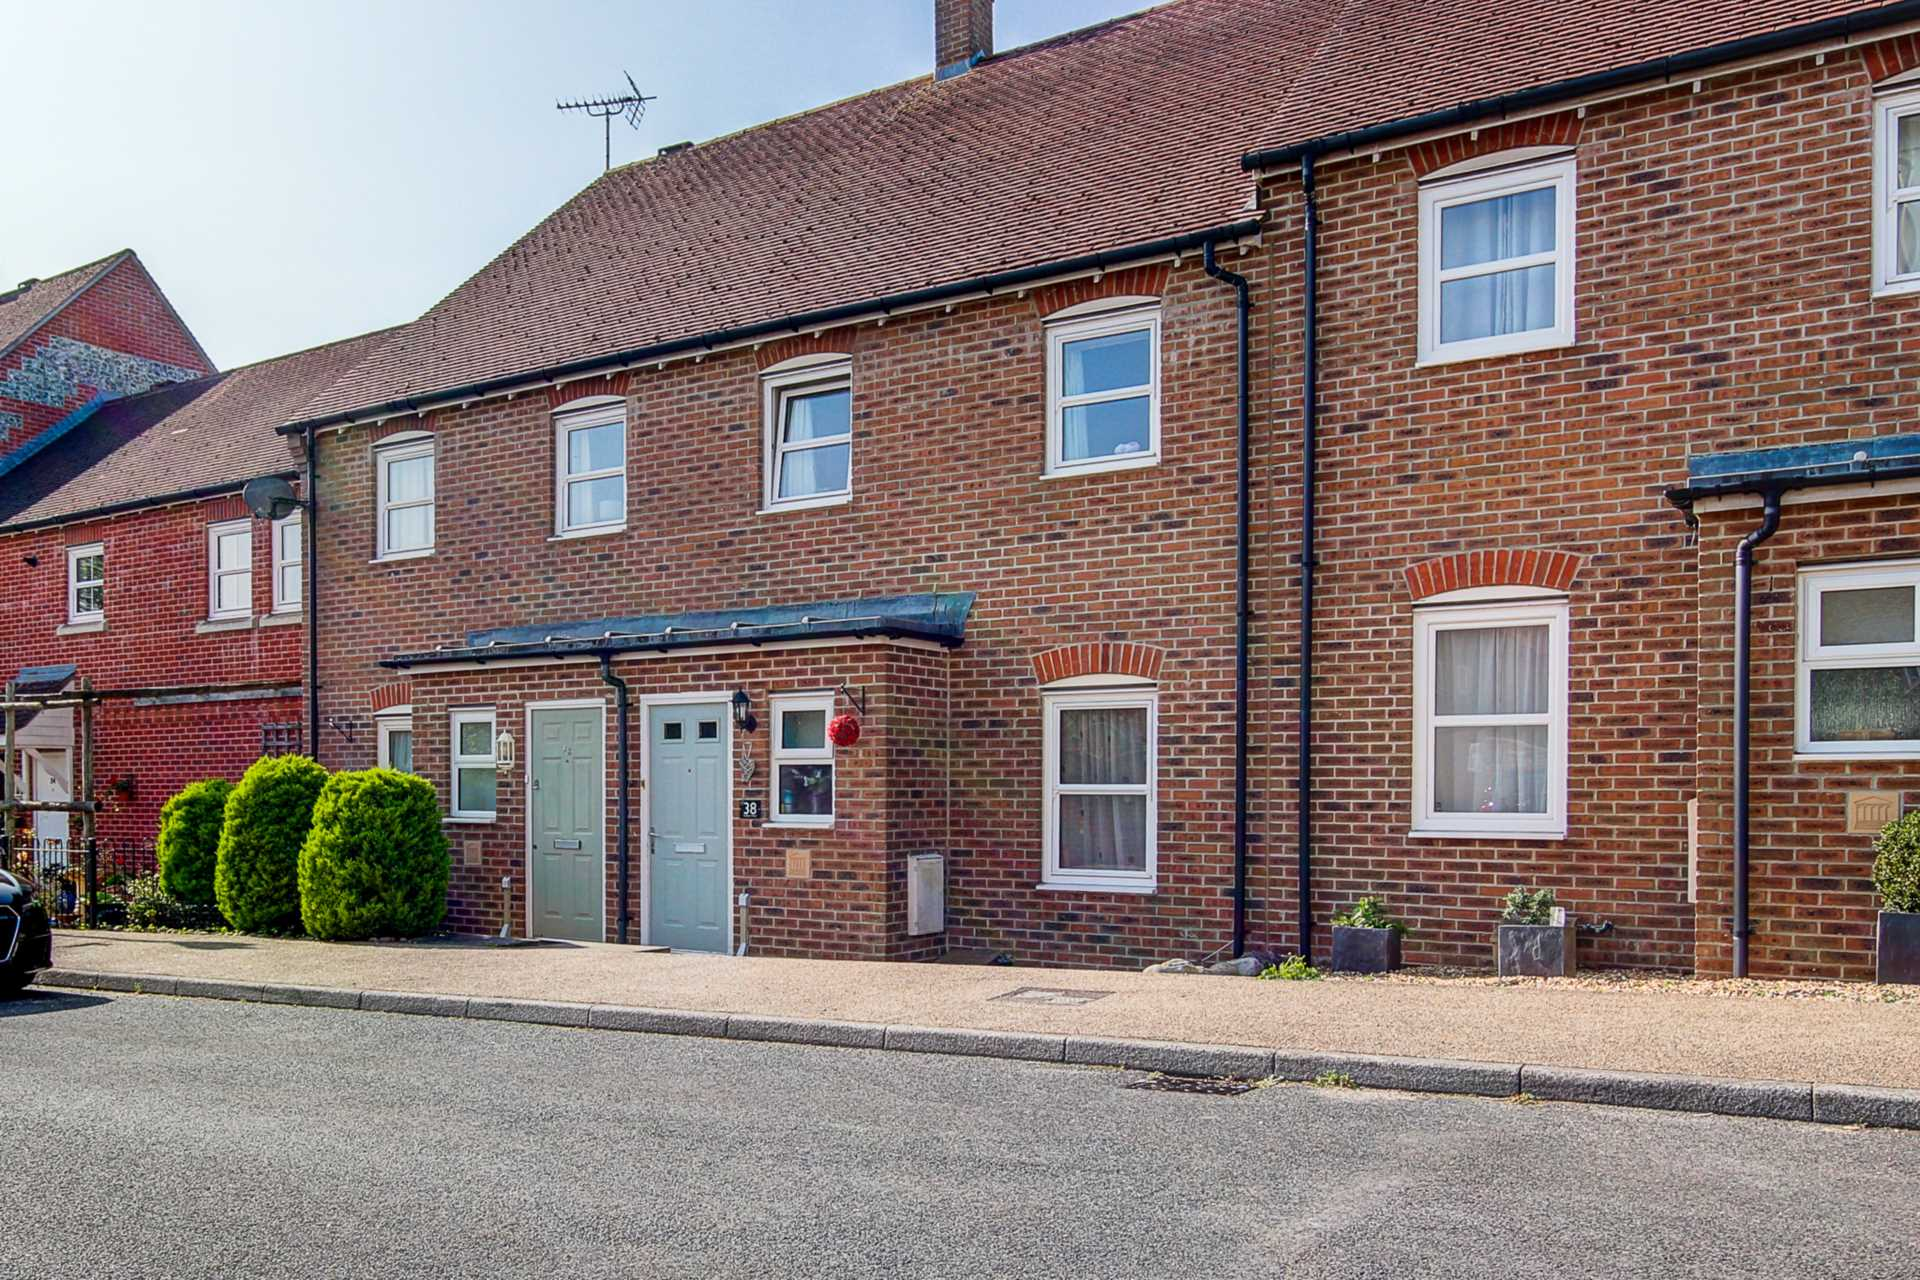 3 bed terraced house for sale in Cobham Road, Blandford Forum, Blandford Forum  - Property Image 1